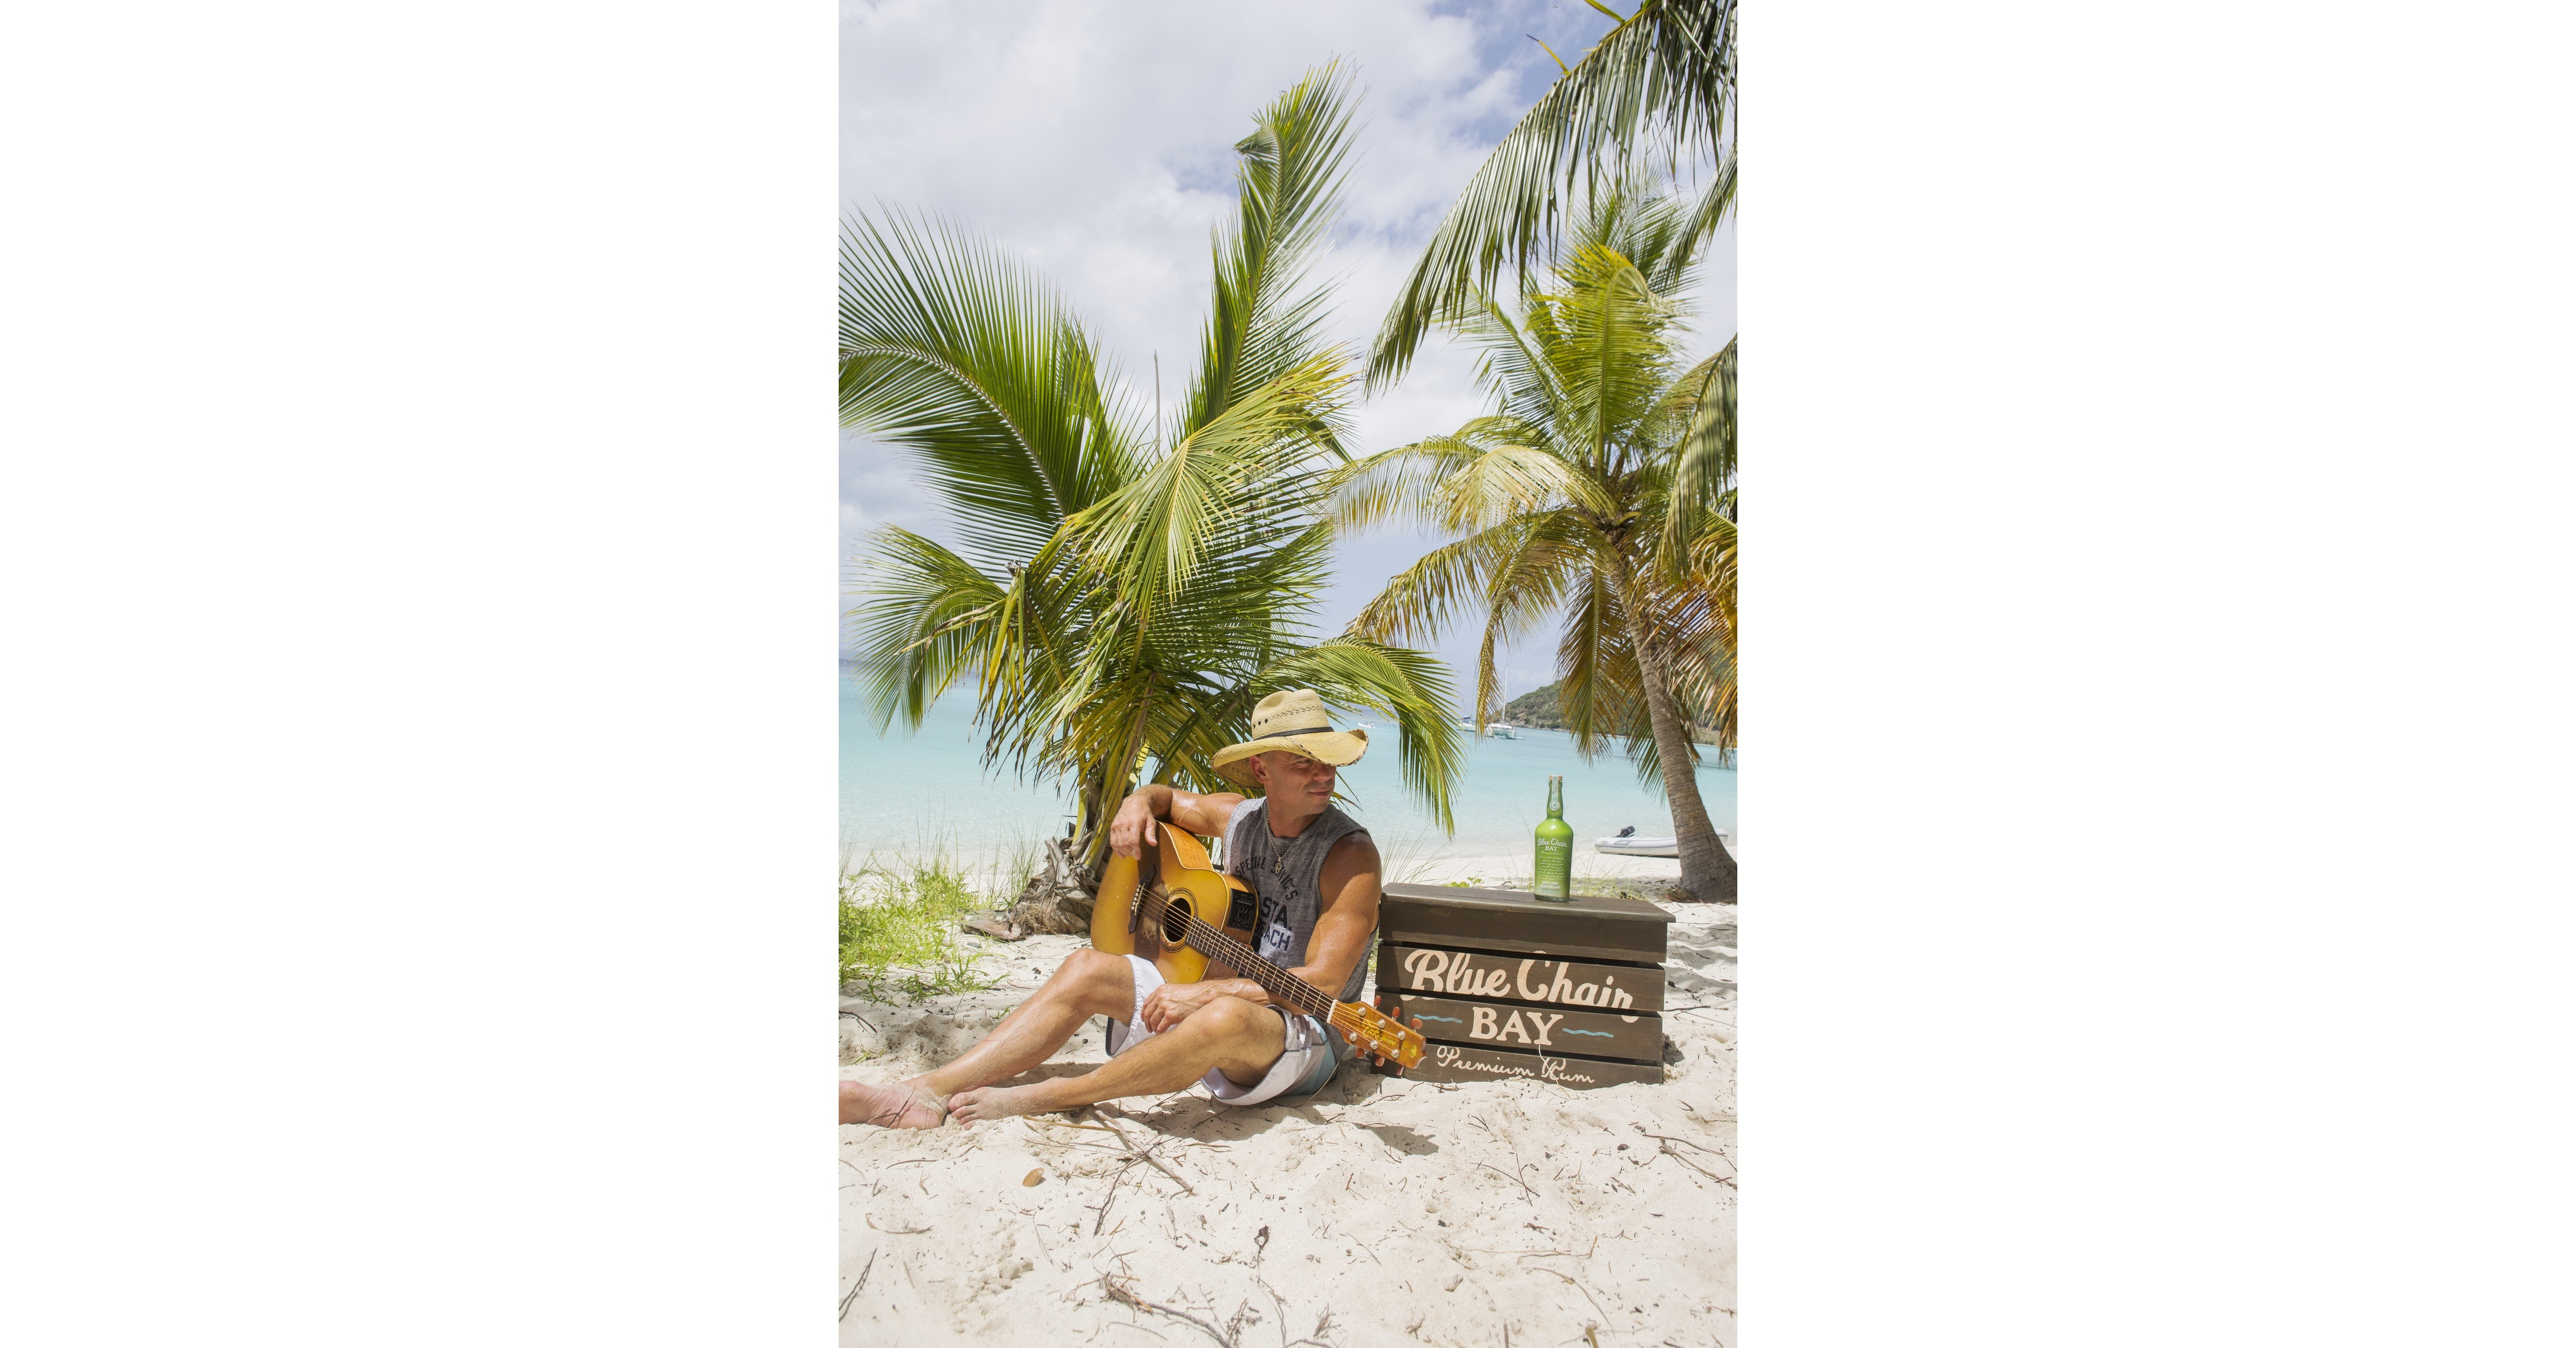 Kenny Chesney s Blue Chair Bay Premium Rum Launches Contest